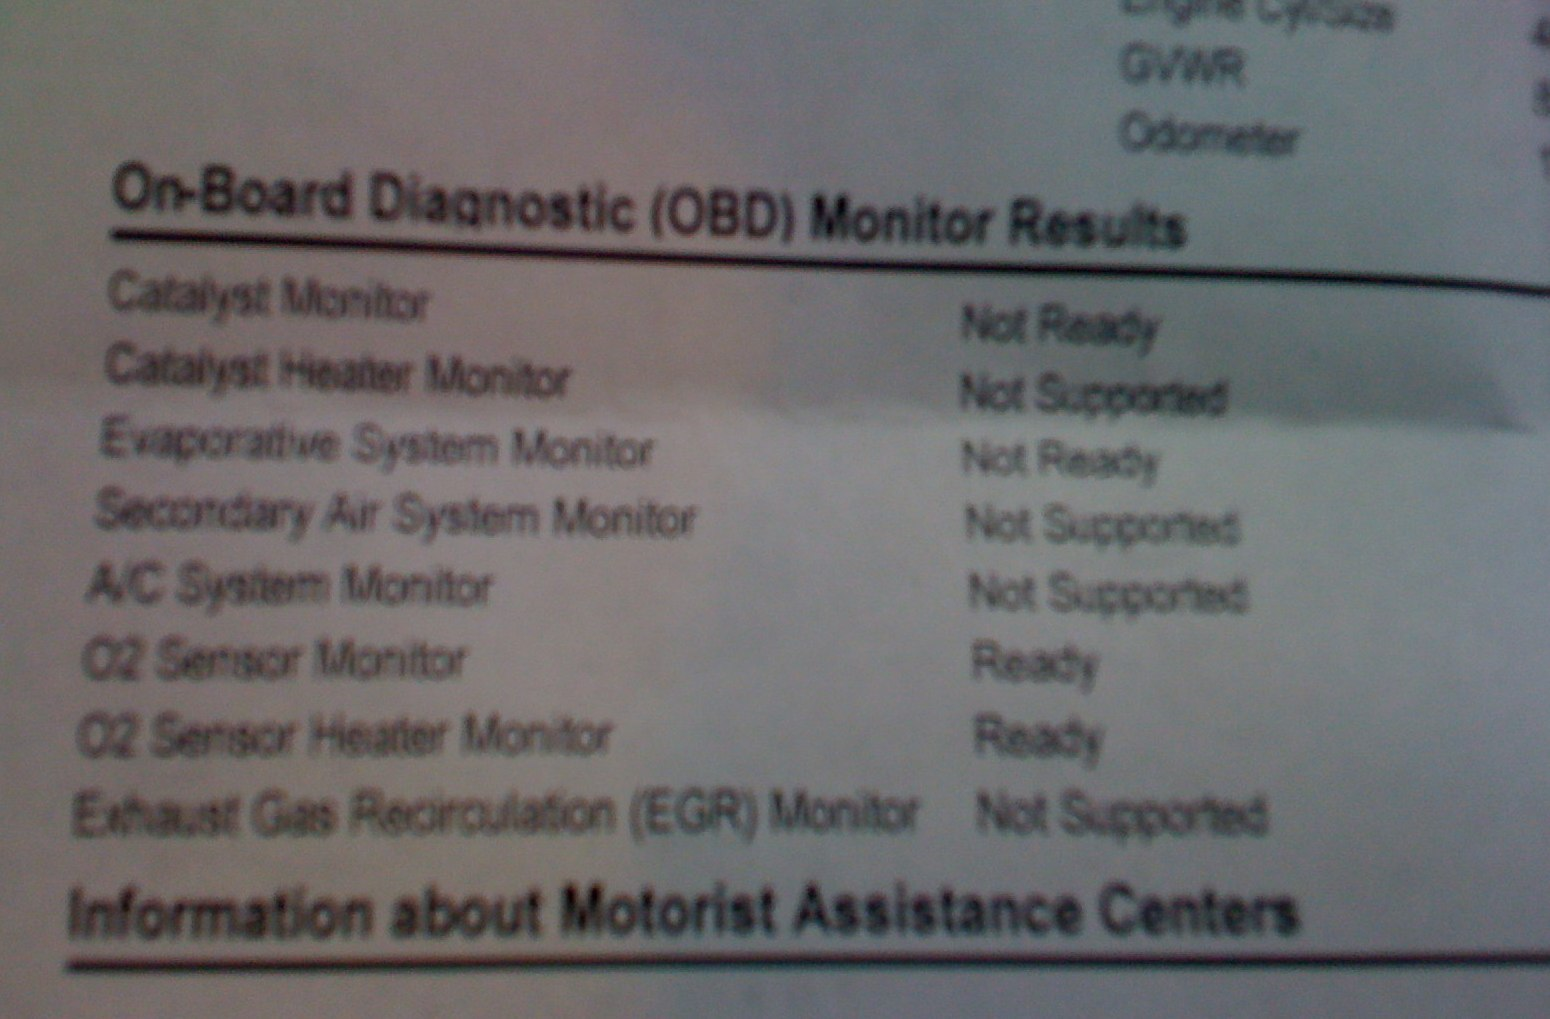 My 2002 Camry failed inspection because the OBD read